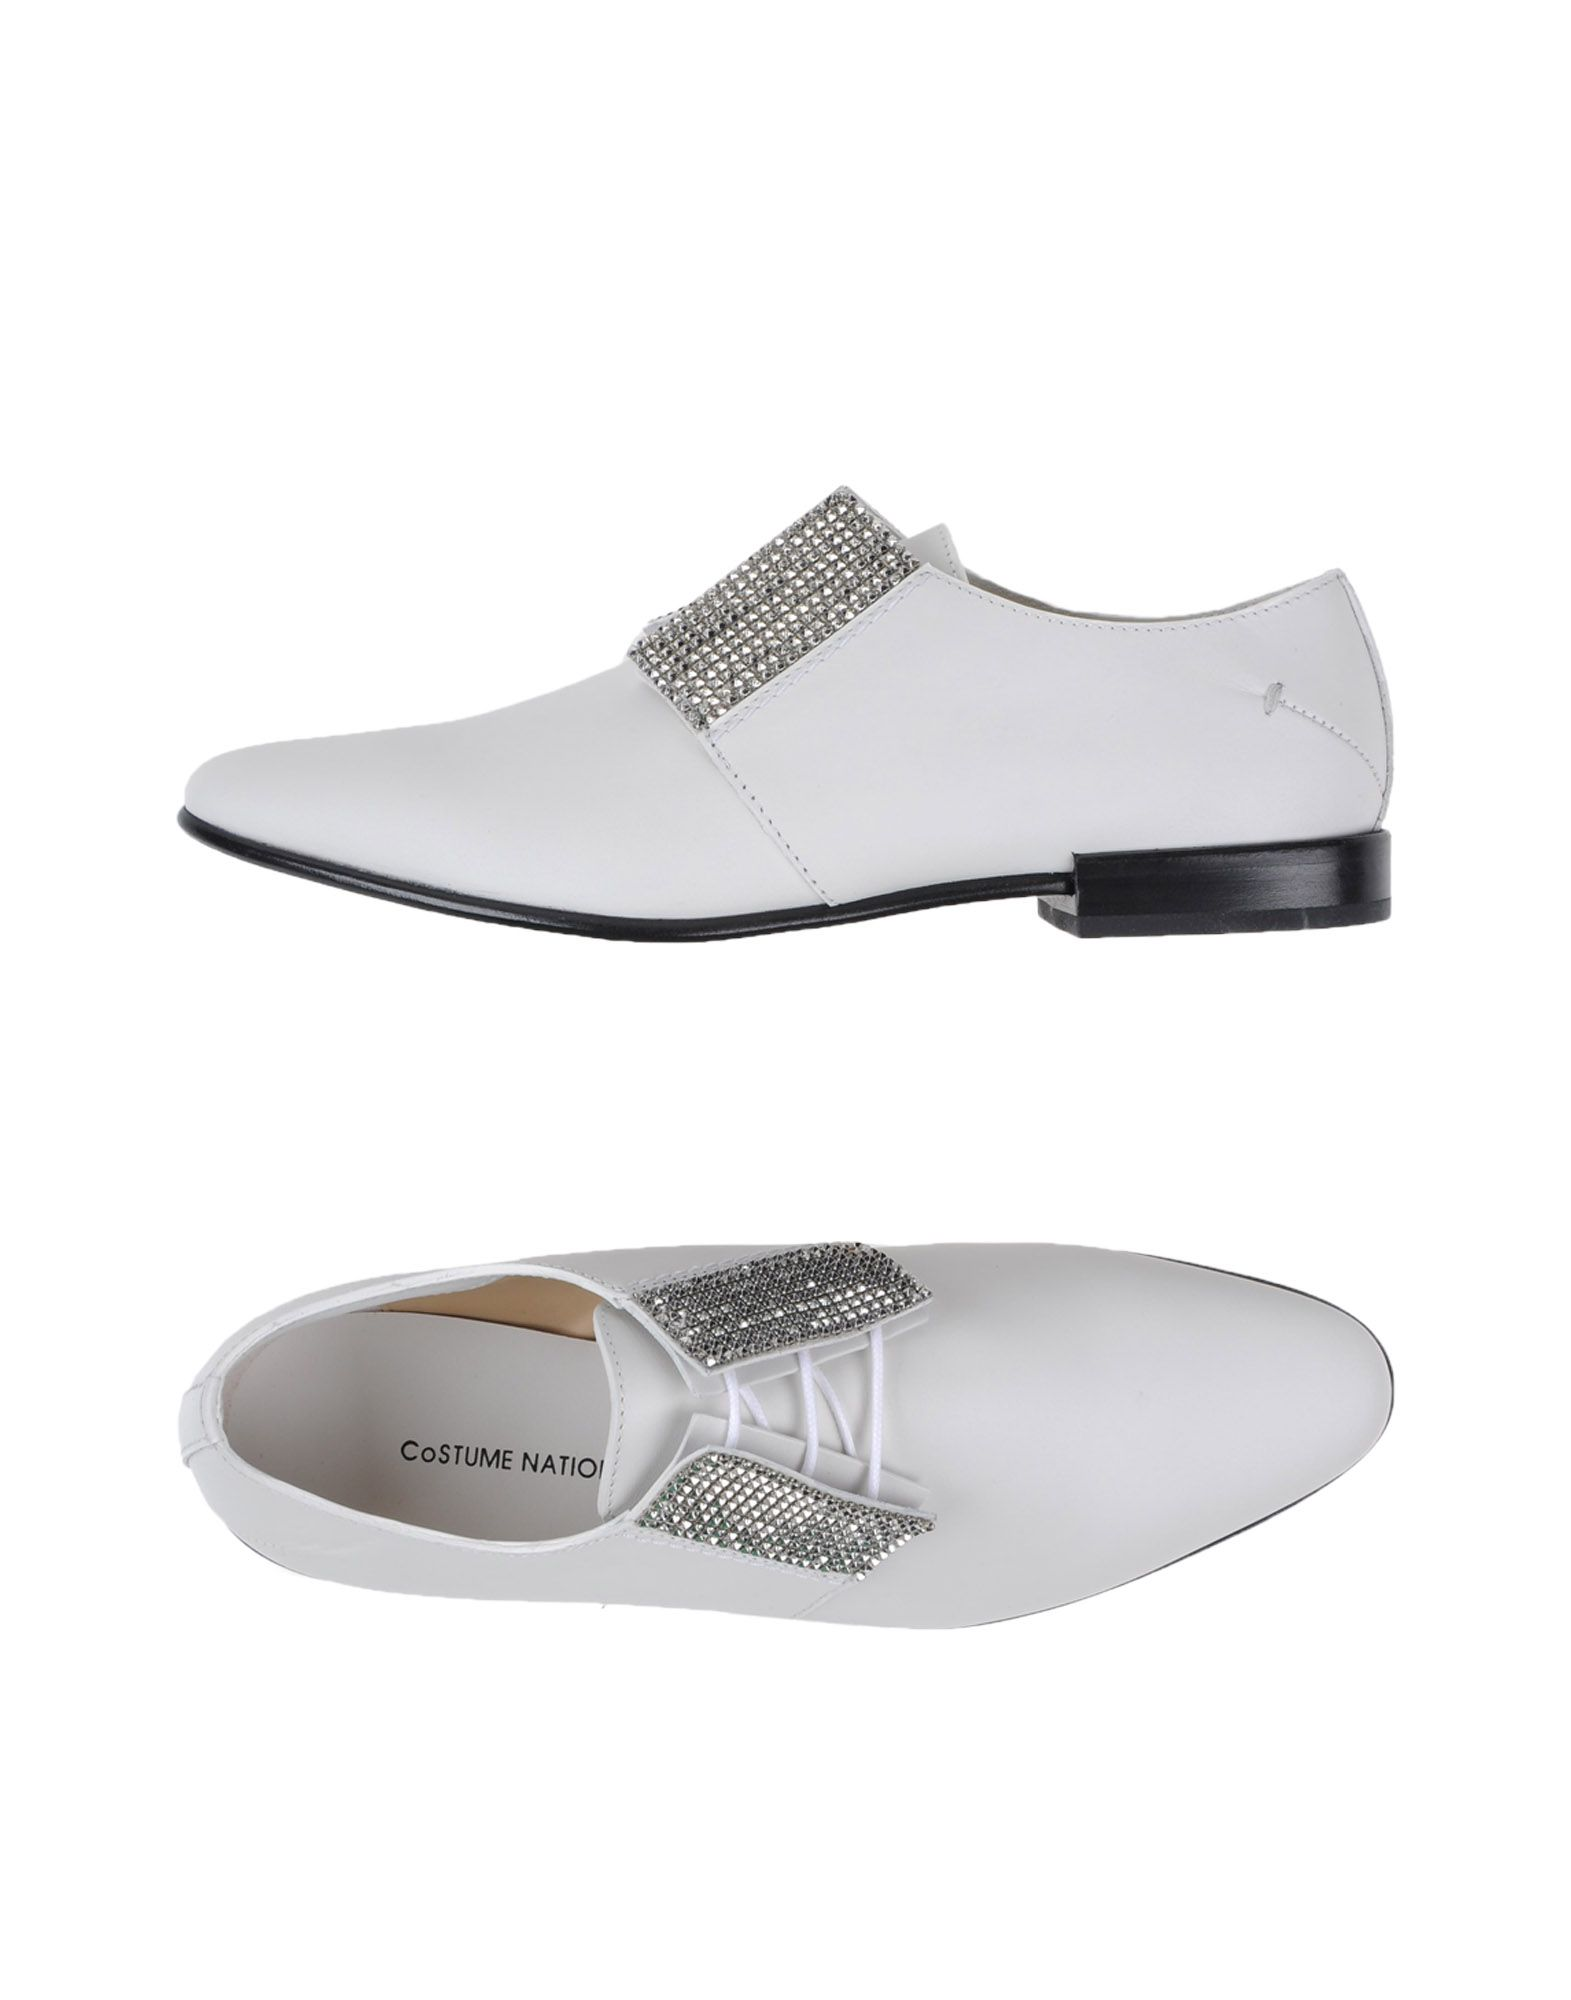 Chaussures À Lacets Costume National Femme - Chaussures À Lacets Costume National sur